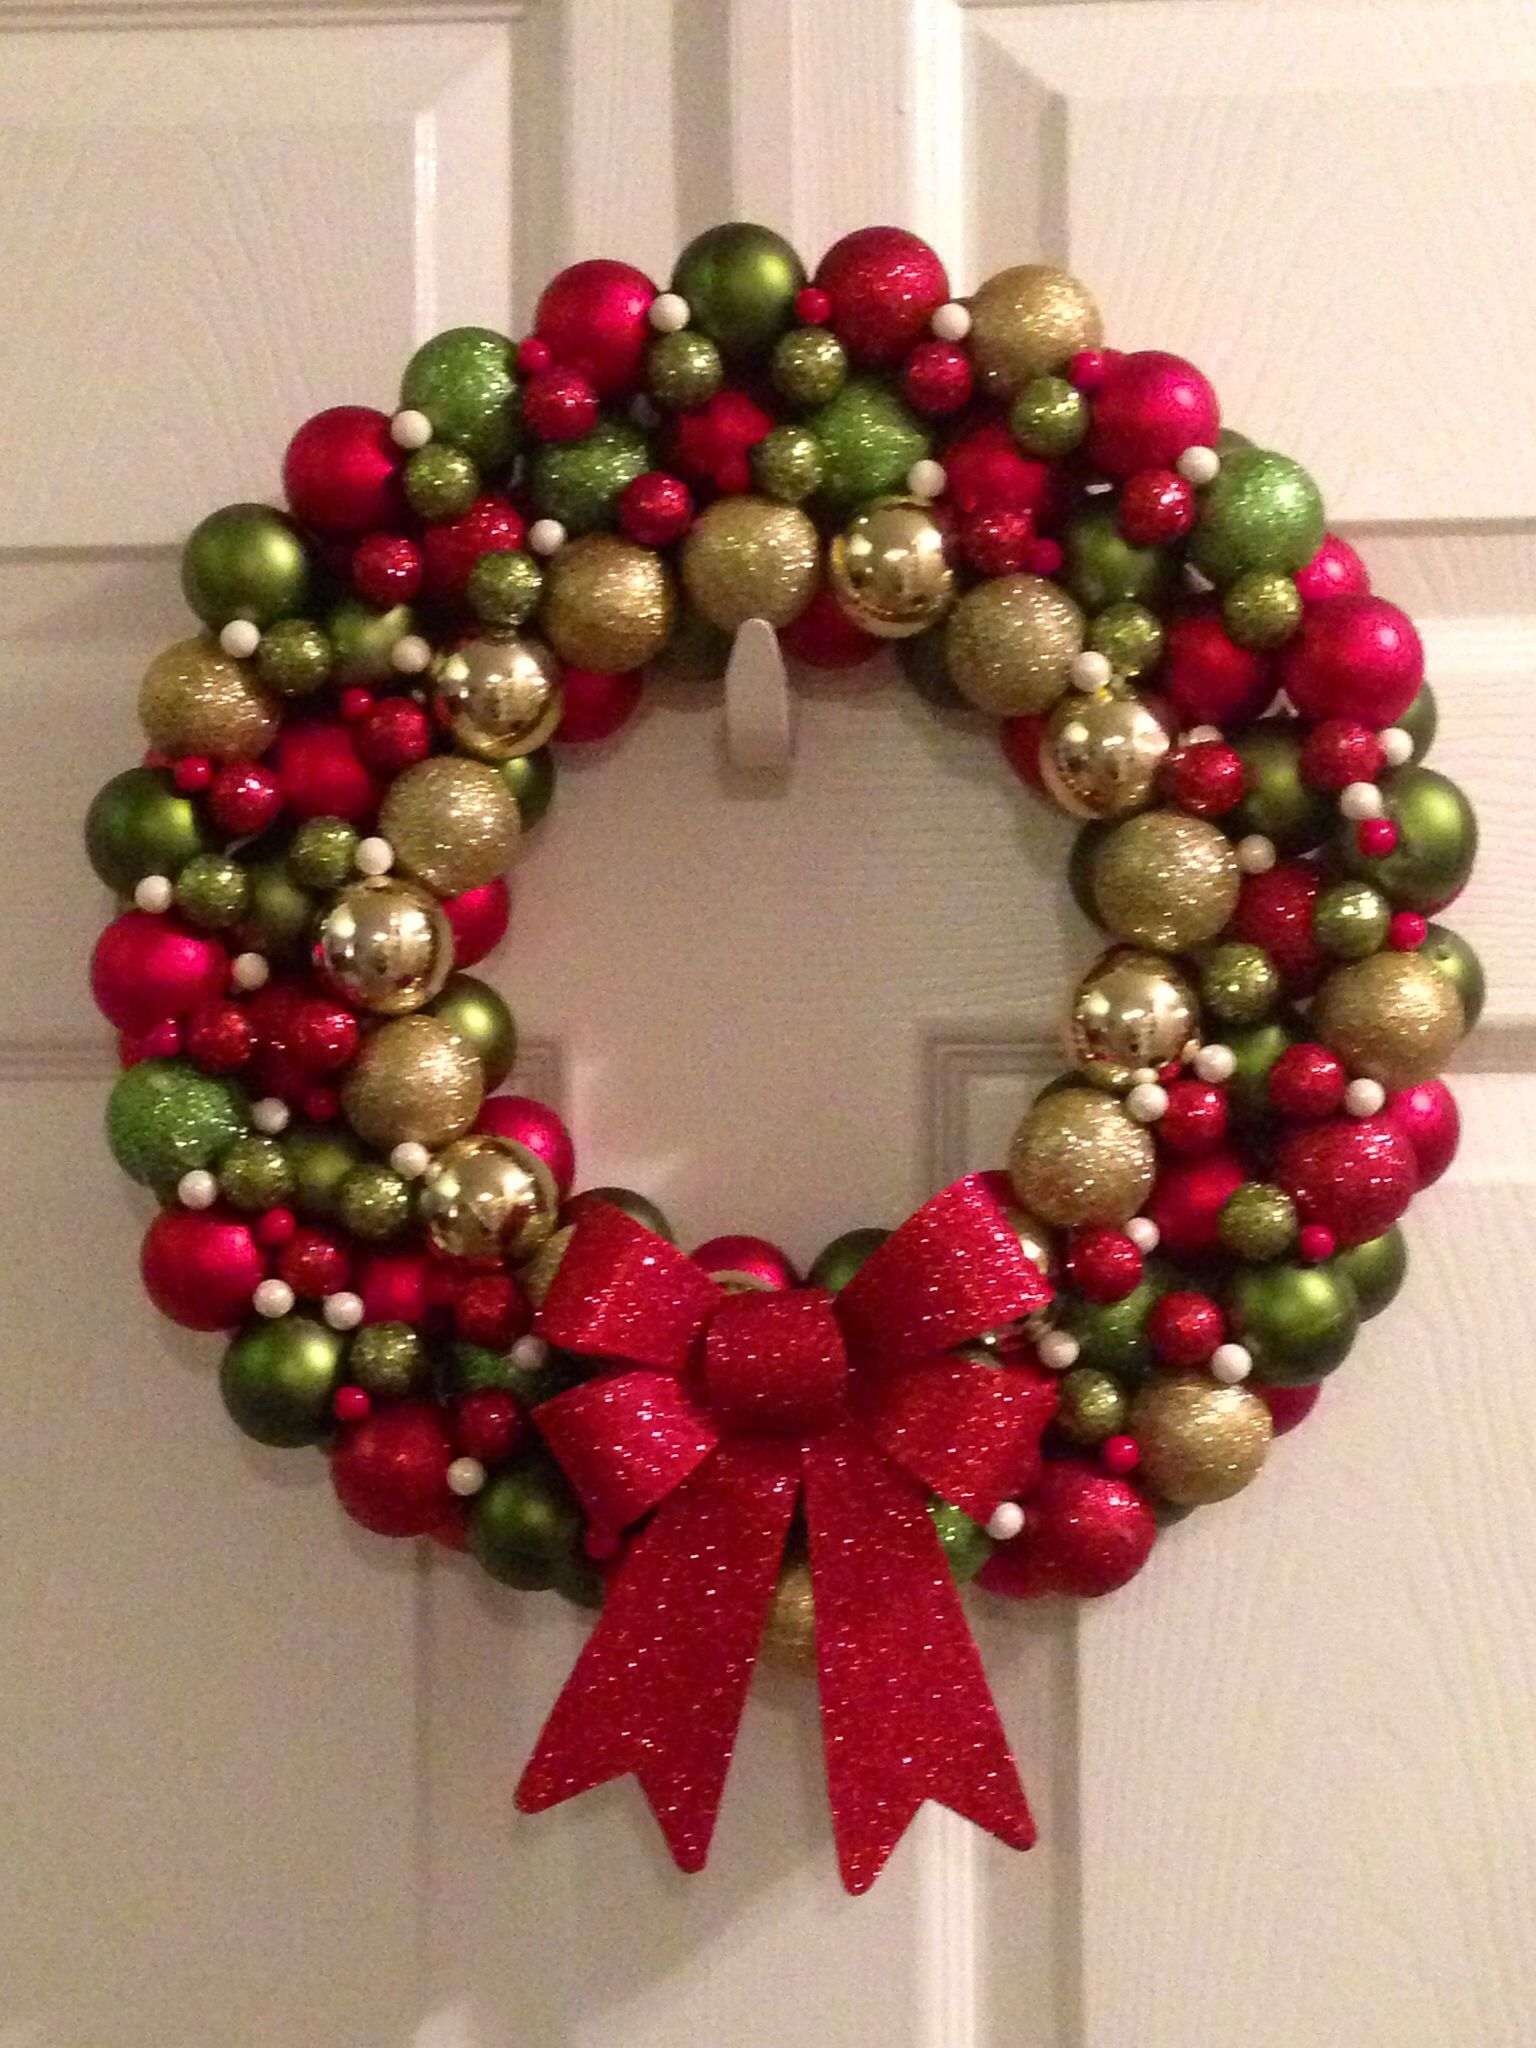 Ornament Christmas Wreath Be Bold With Your House Decorated In Red Green And Gold Christmas Wreaths Diy Christmas Wreaths Christmas Ornament Wreath